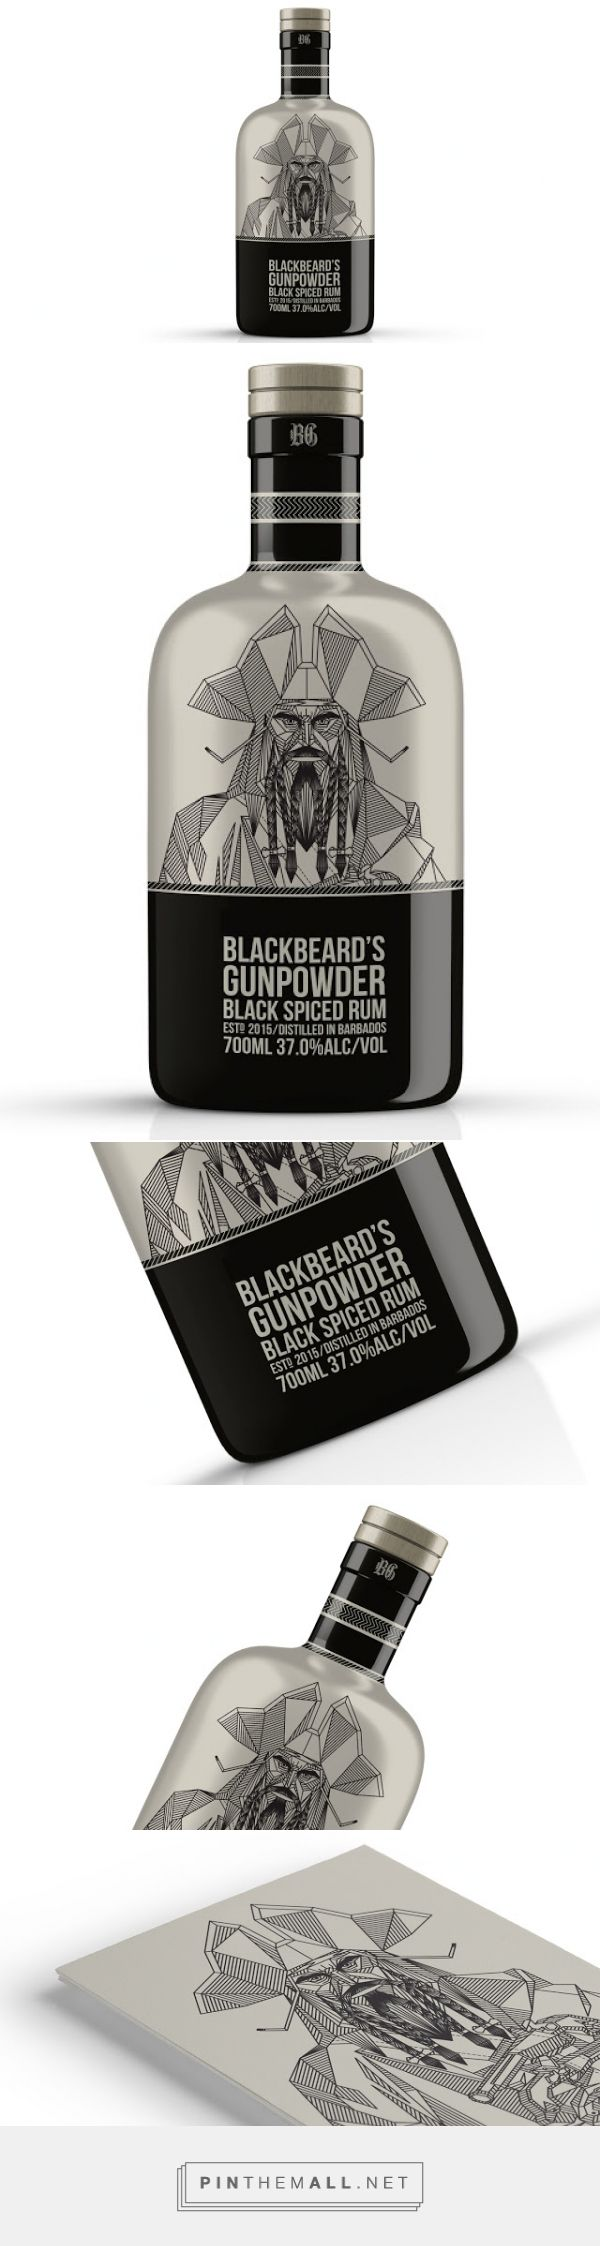 Blackbeard s gunpowder rum concept